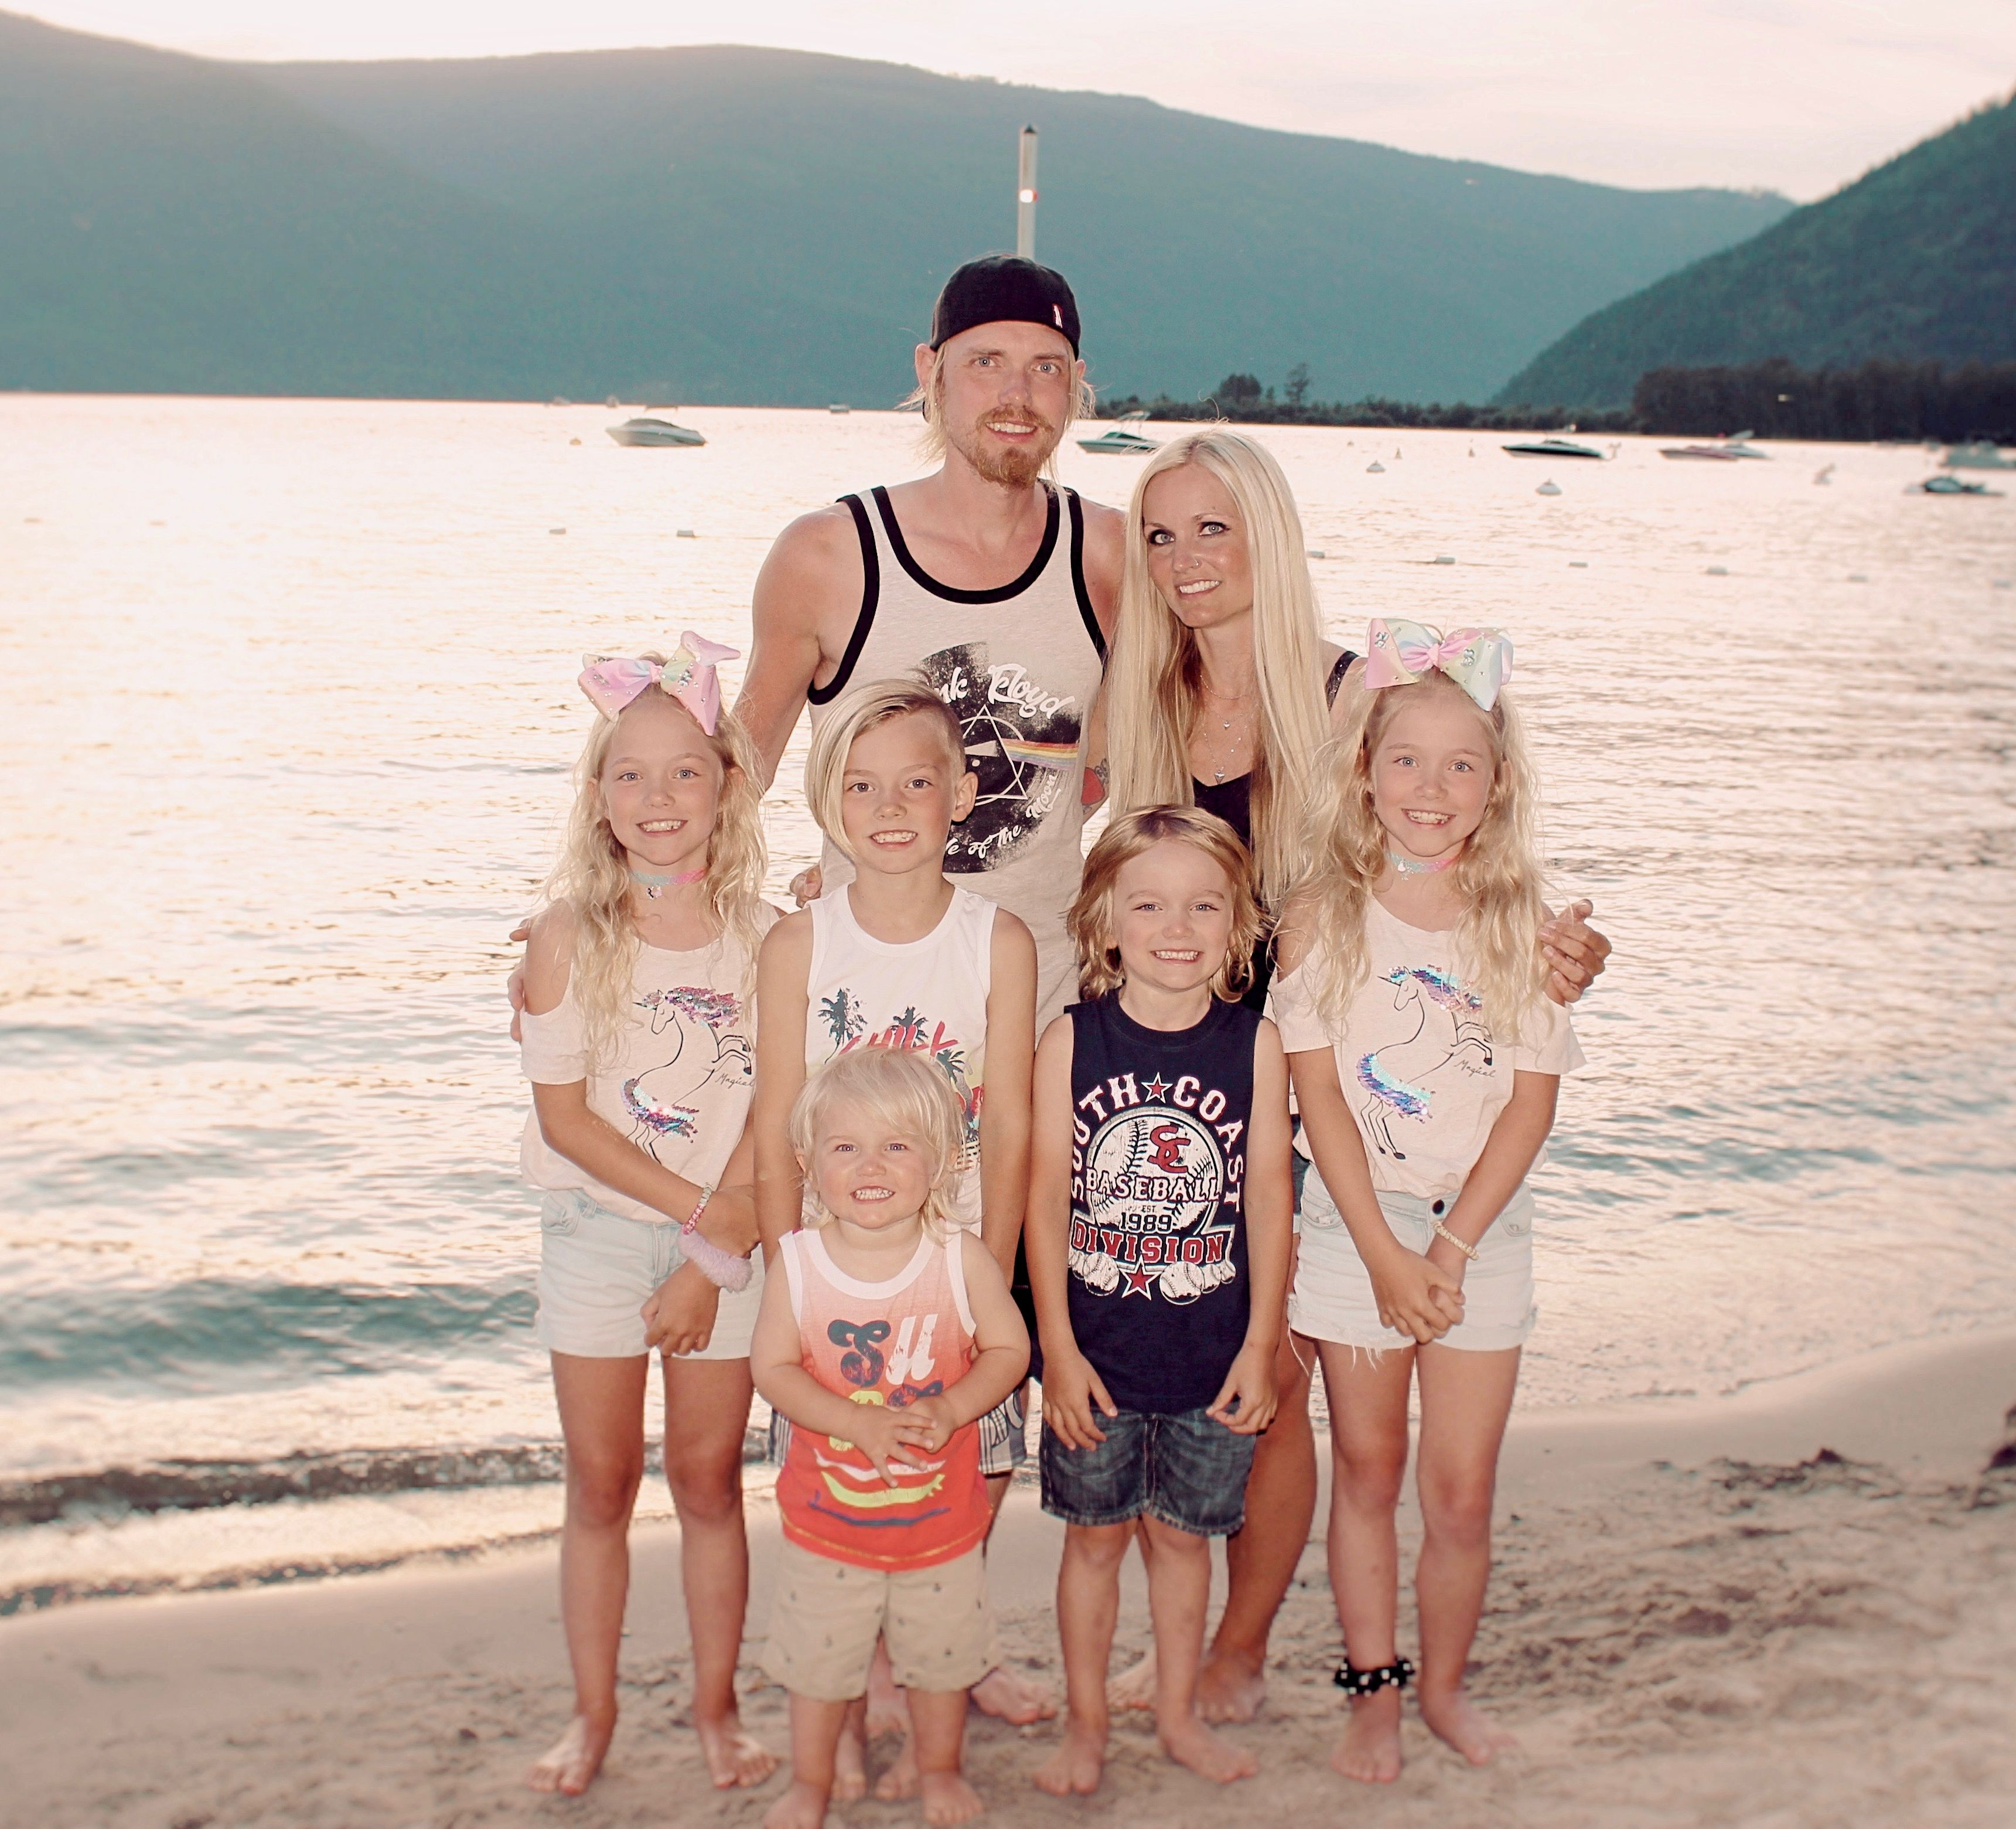 Christian couple at the beach with their 5 beautiful children